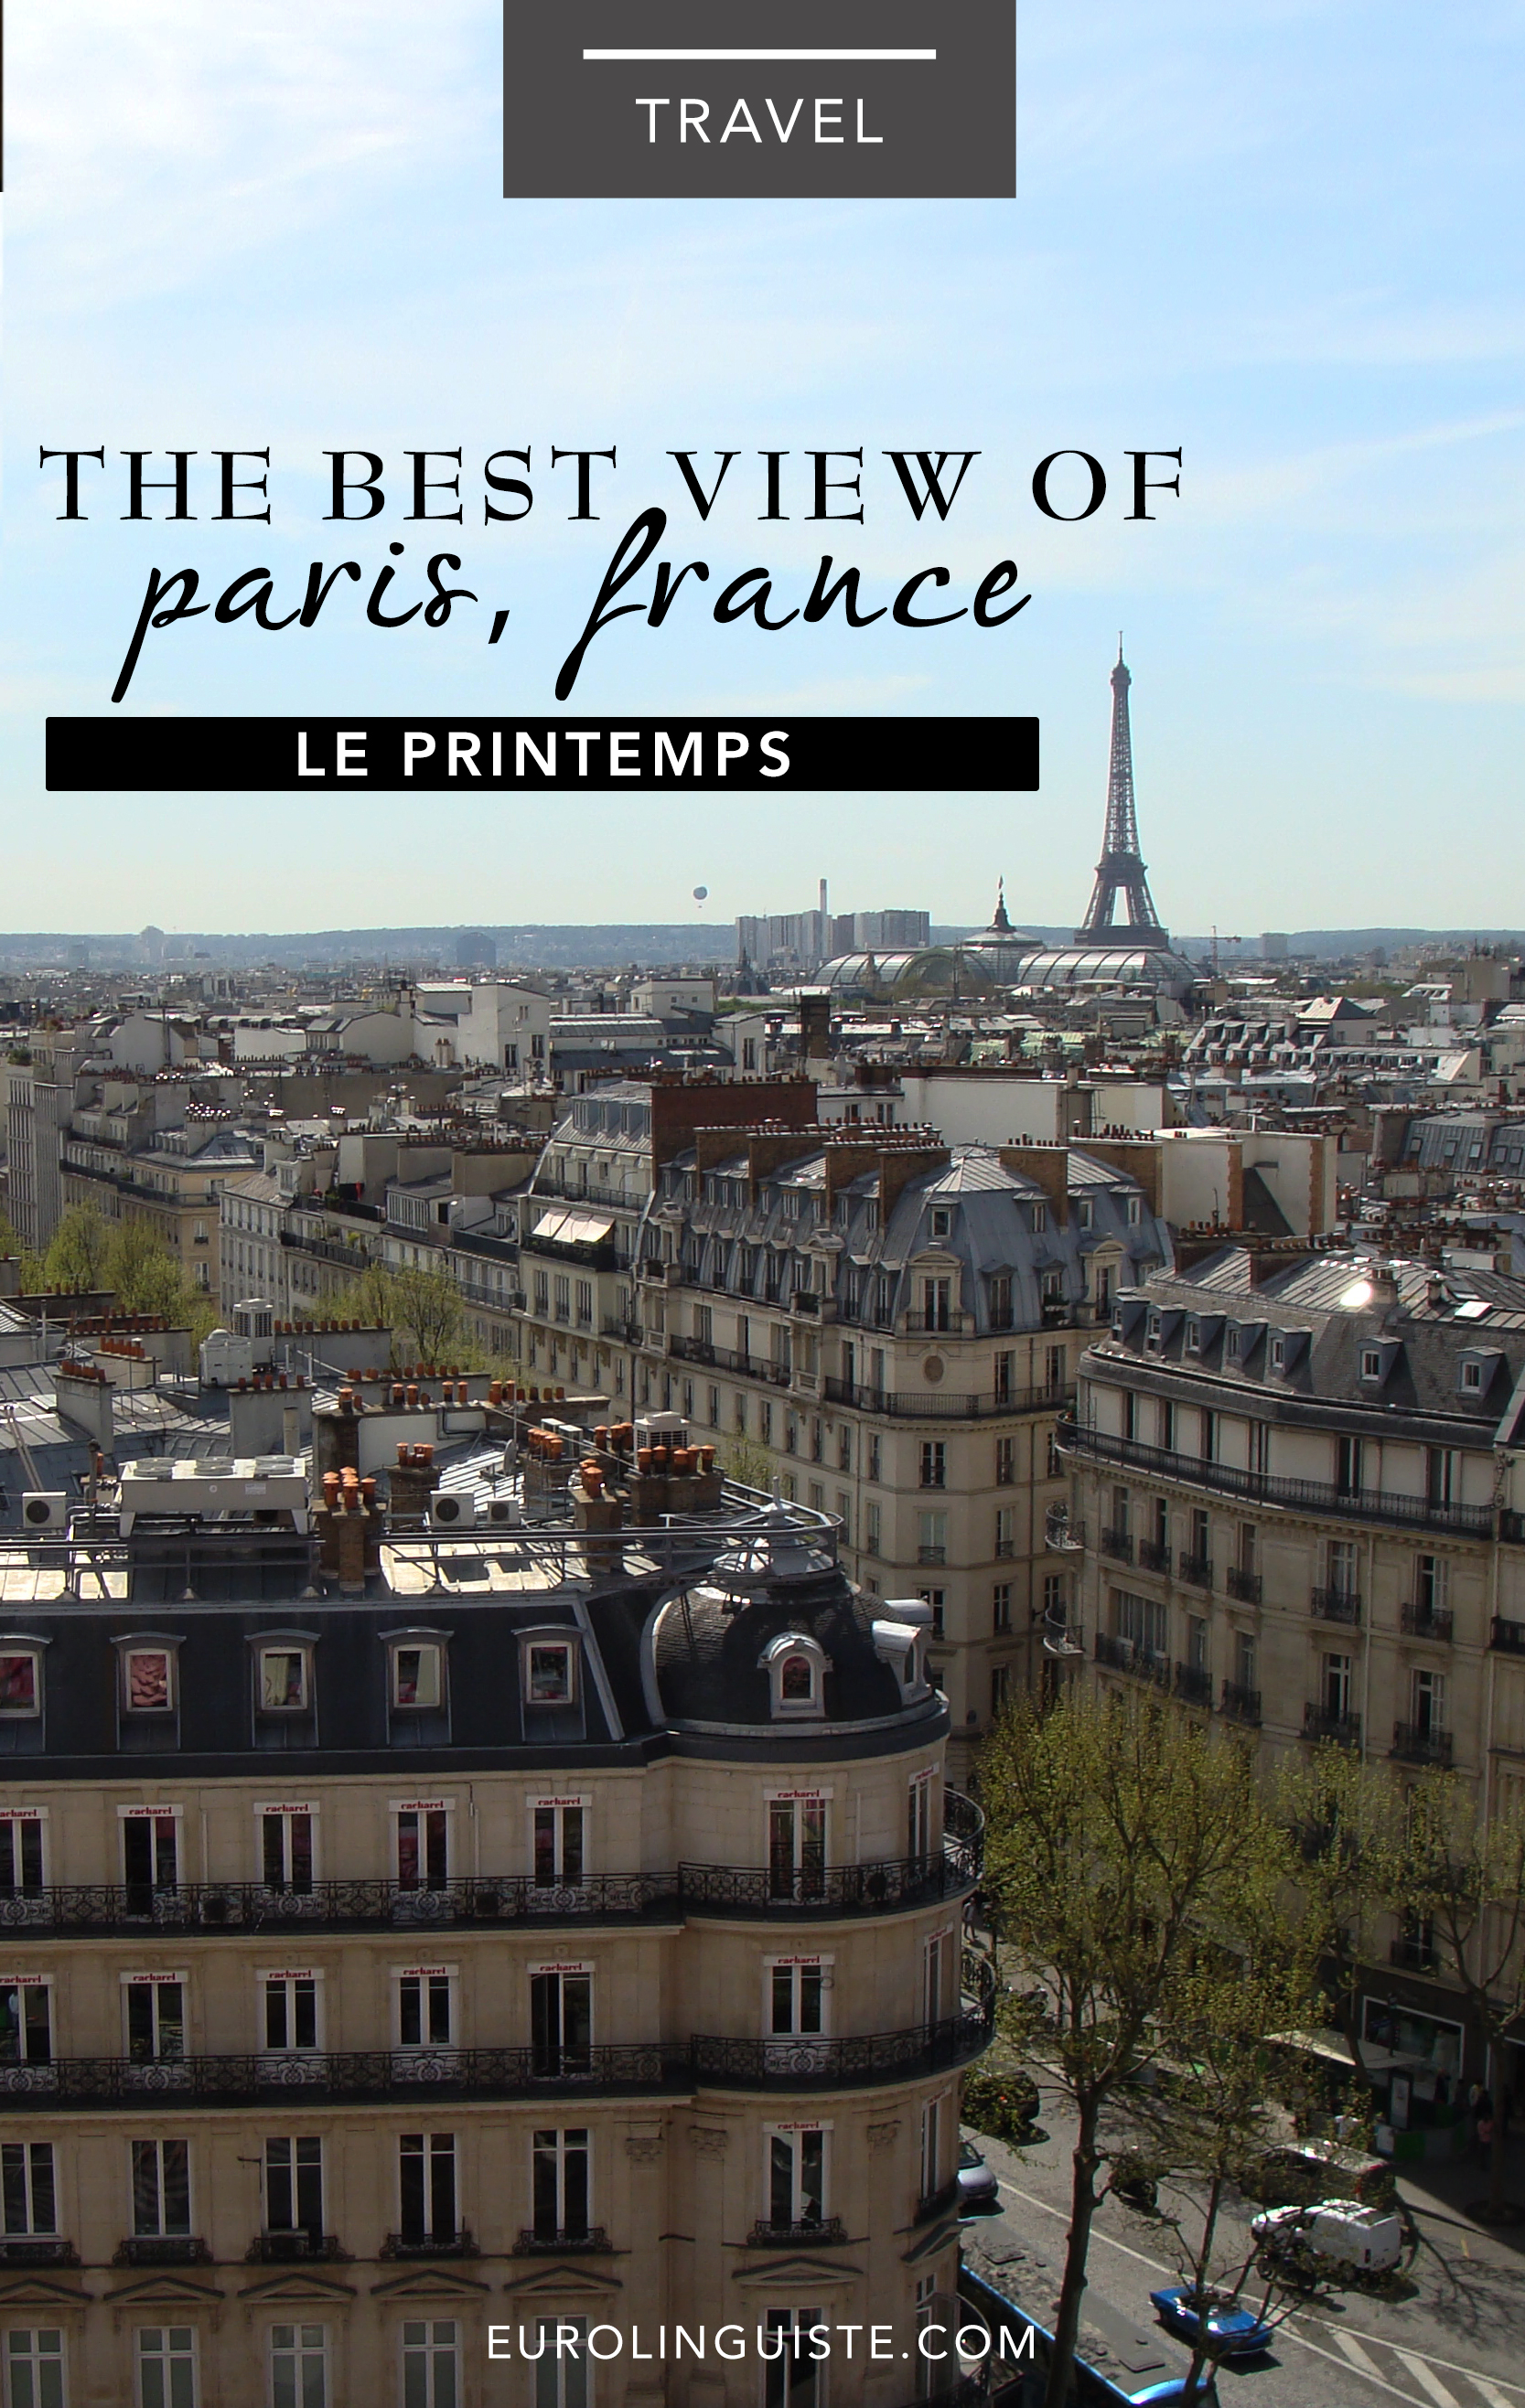 The Best View of Paris | Le Printemps